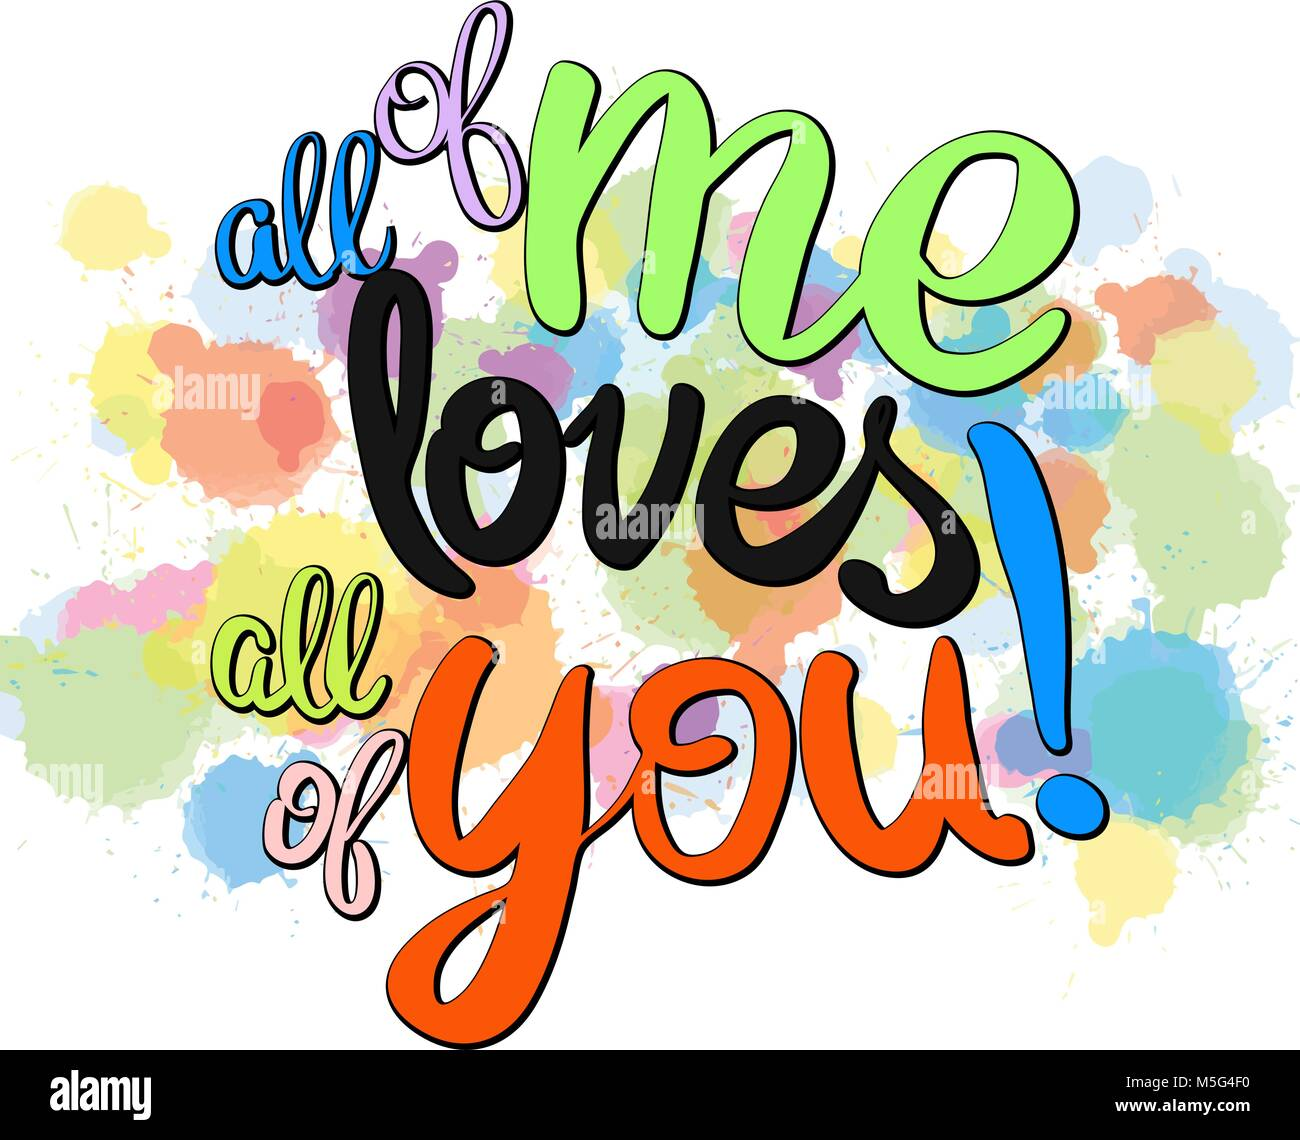 All of me loves all of you written phrase. Vector Artwork Concept. Ready for Poster Print and Greeting Card Design. Stock Vector